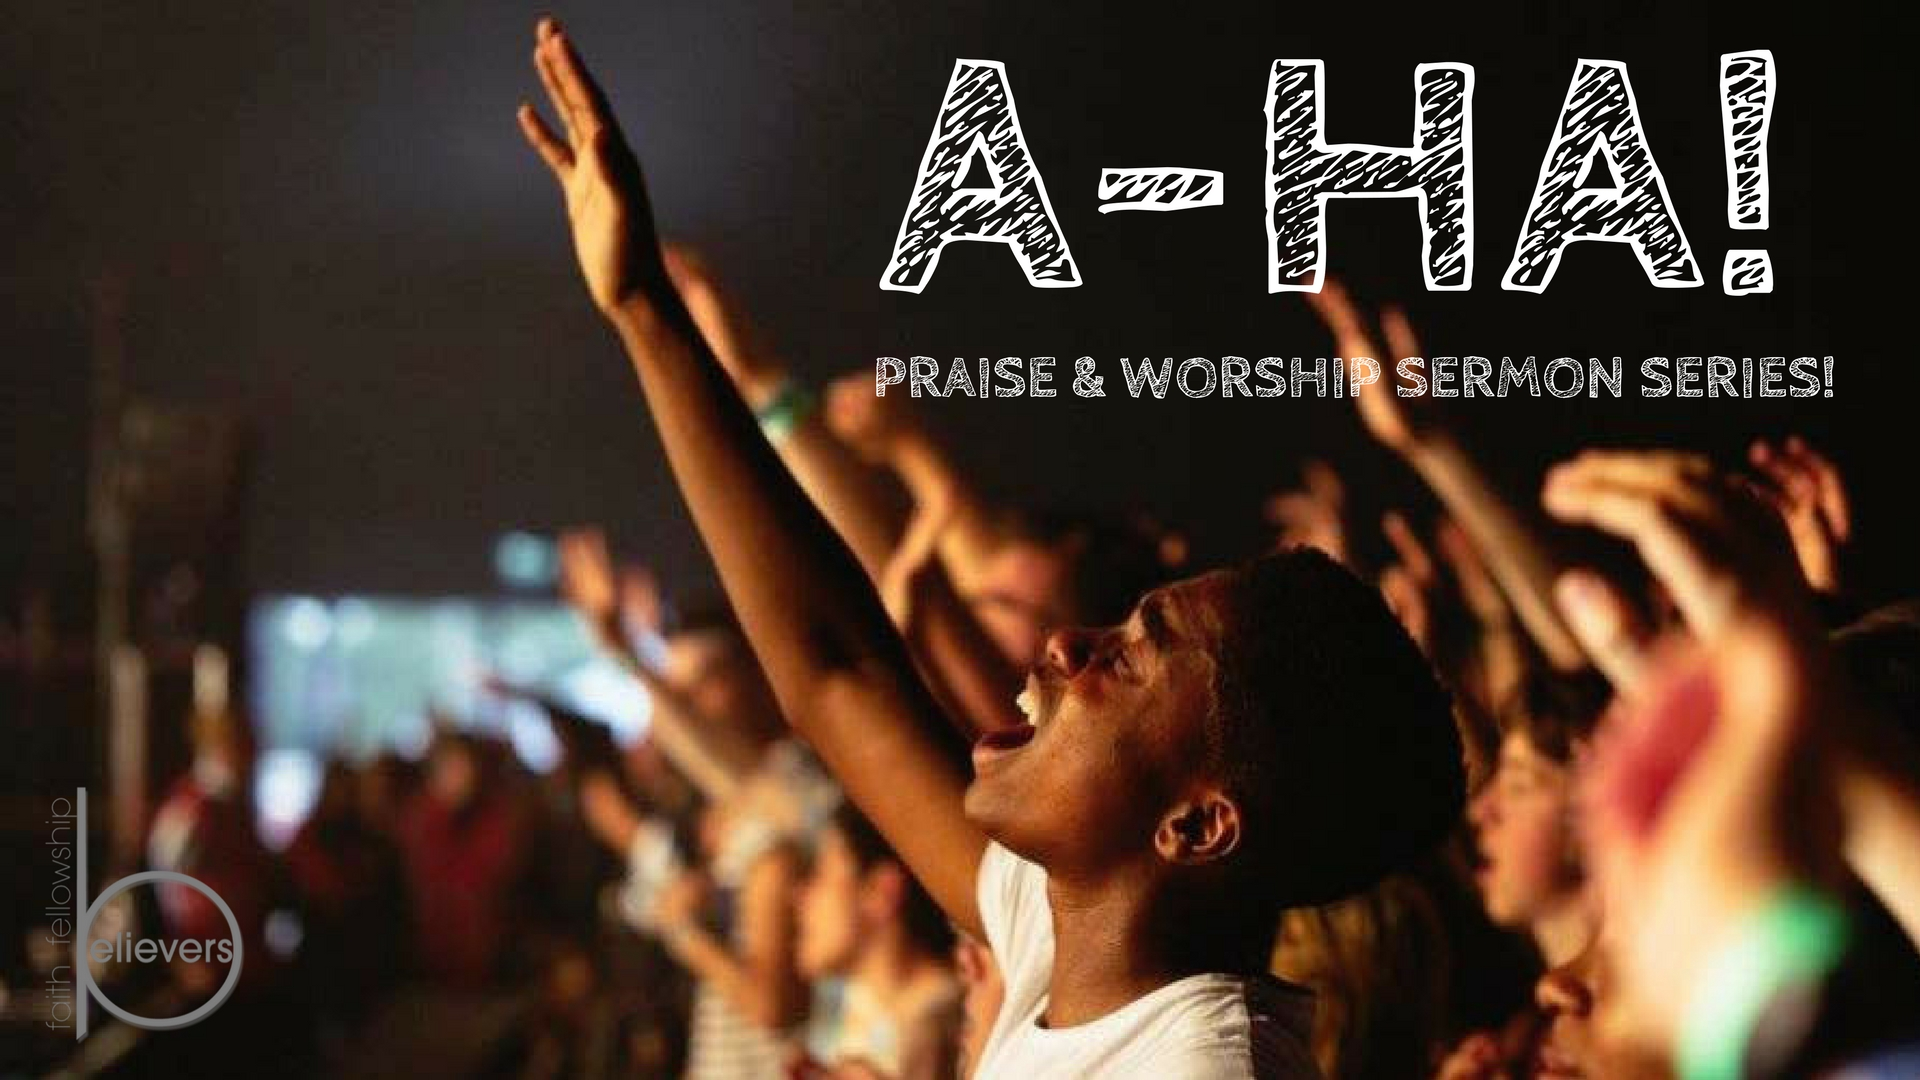 A-sermon-series-about-praise-and-worship